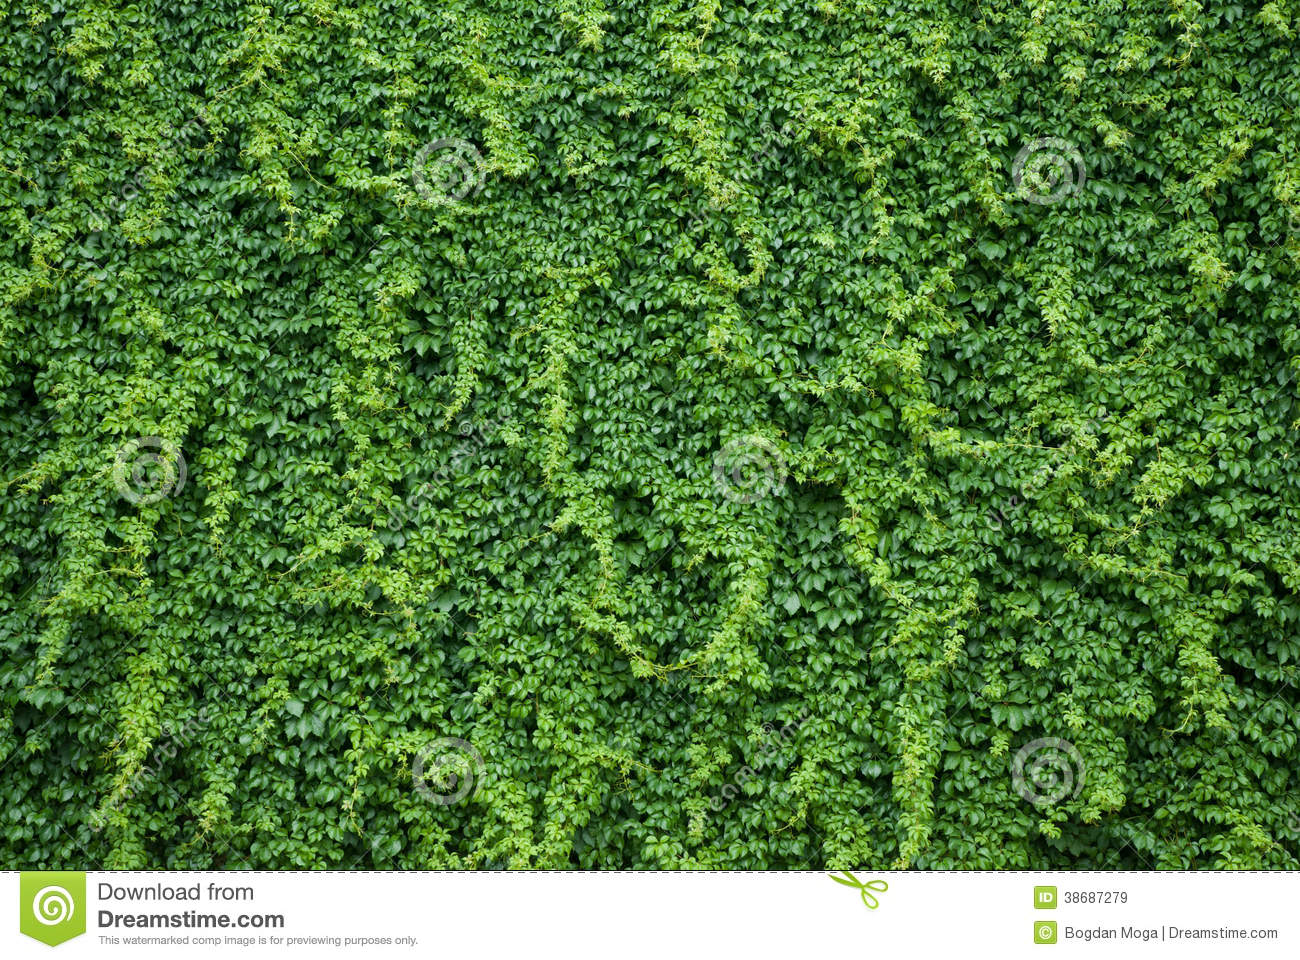 Faux Brick Wallpaper 3d Wall With Green Ivy Leaves Royalty Free Stock Images